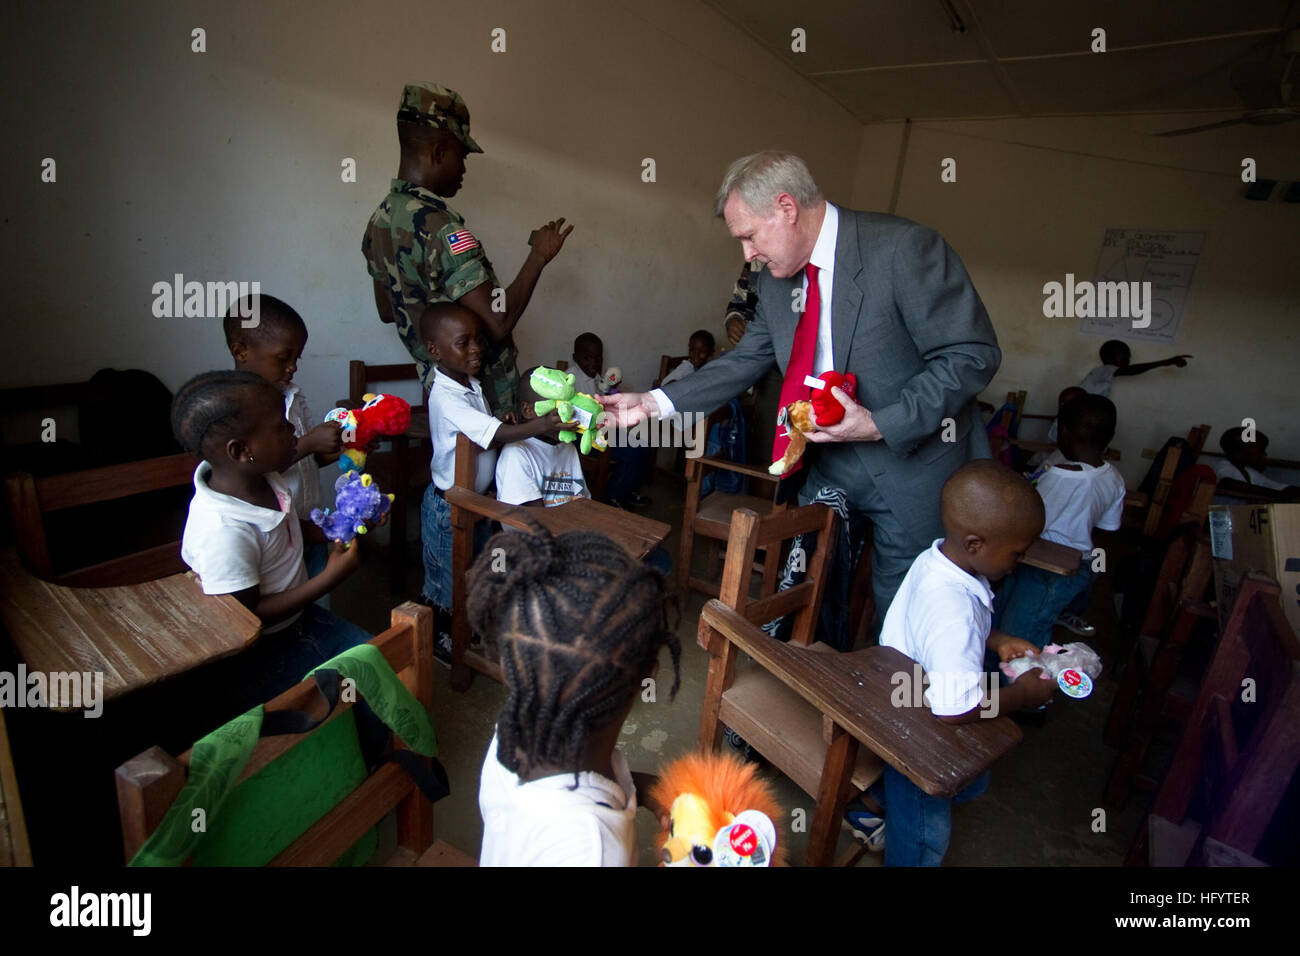 110531-N-UH963-138 MONROVIA, Liberia (May 31, 2011) Secretary of the Navy (SECNAV) the Honorable Ray Mabus delivers - Stock Image